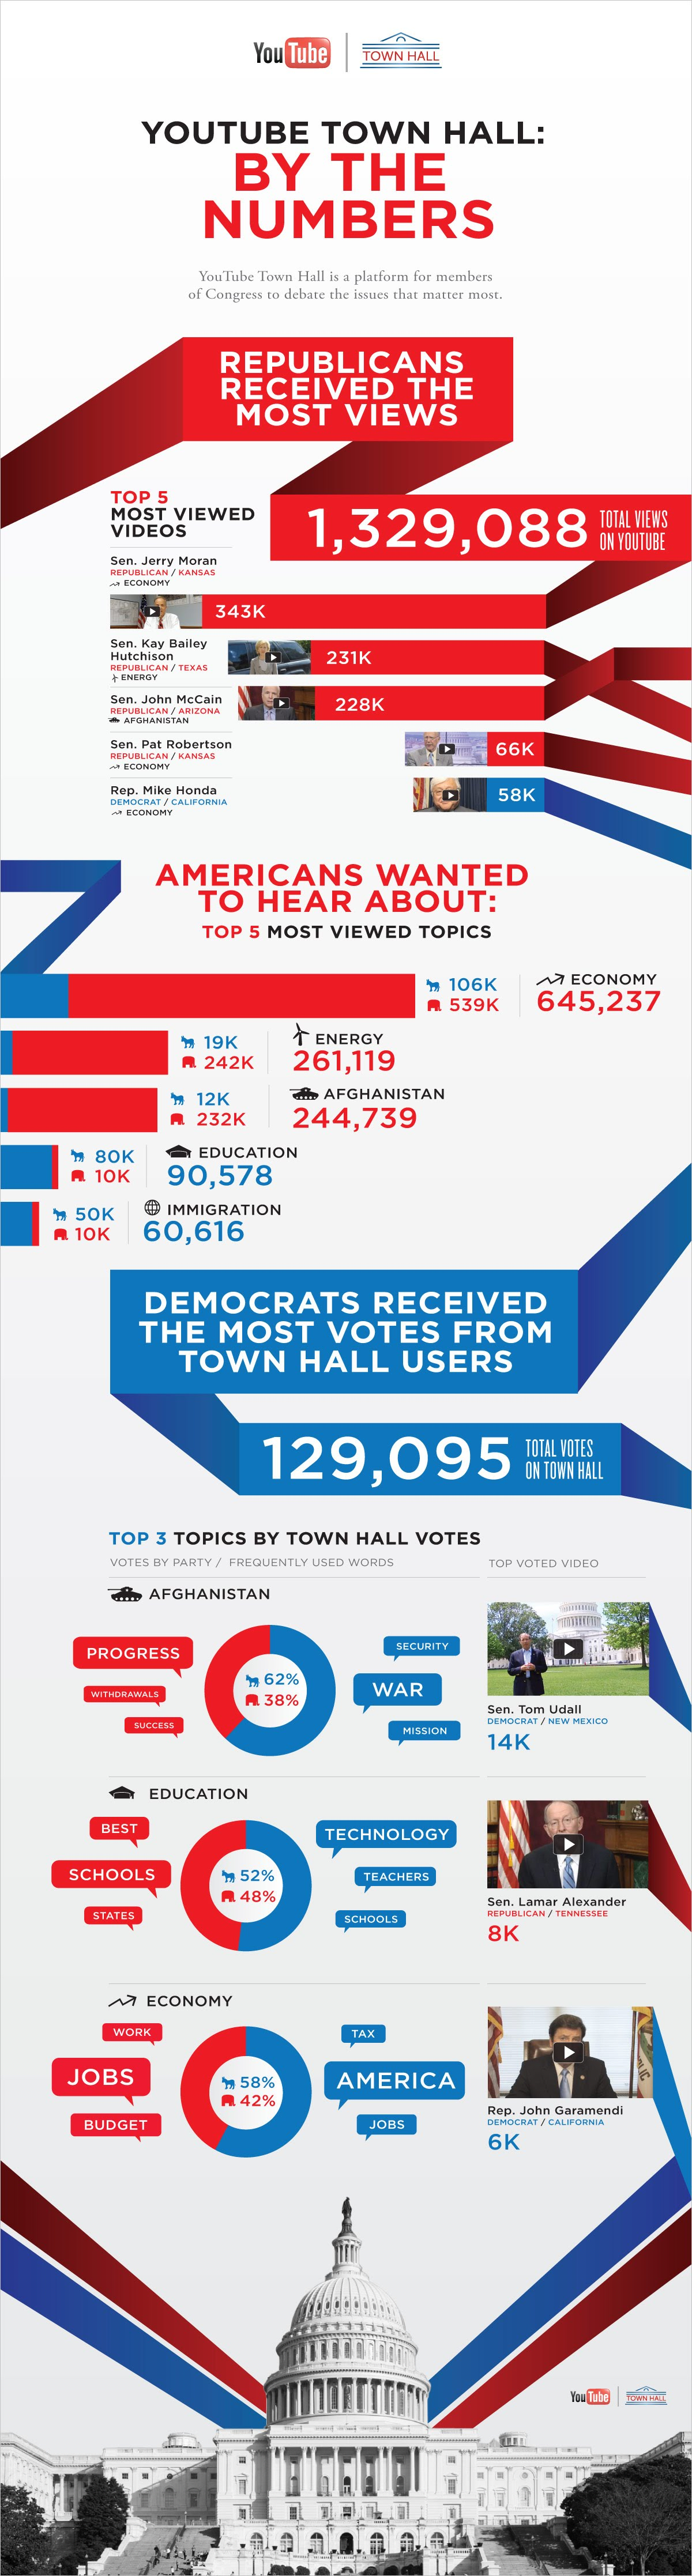 youtube-townhall--by-the-numbers_5248b5beb2006